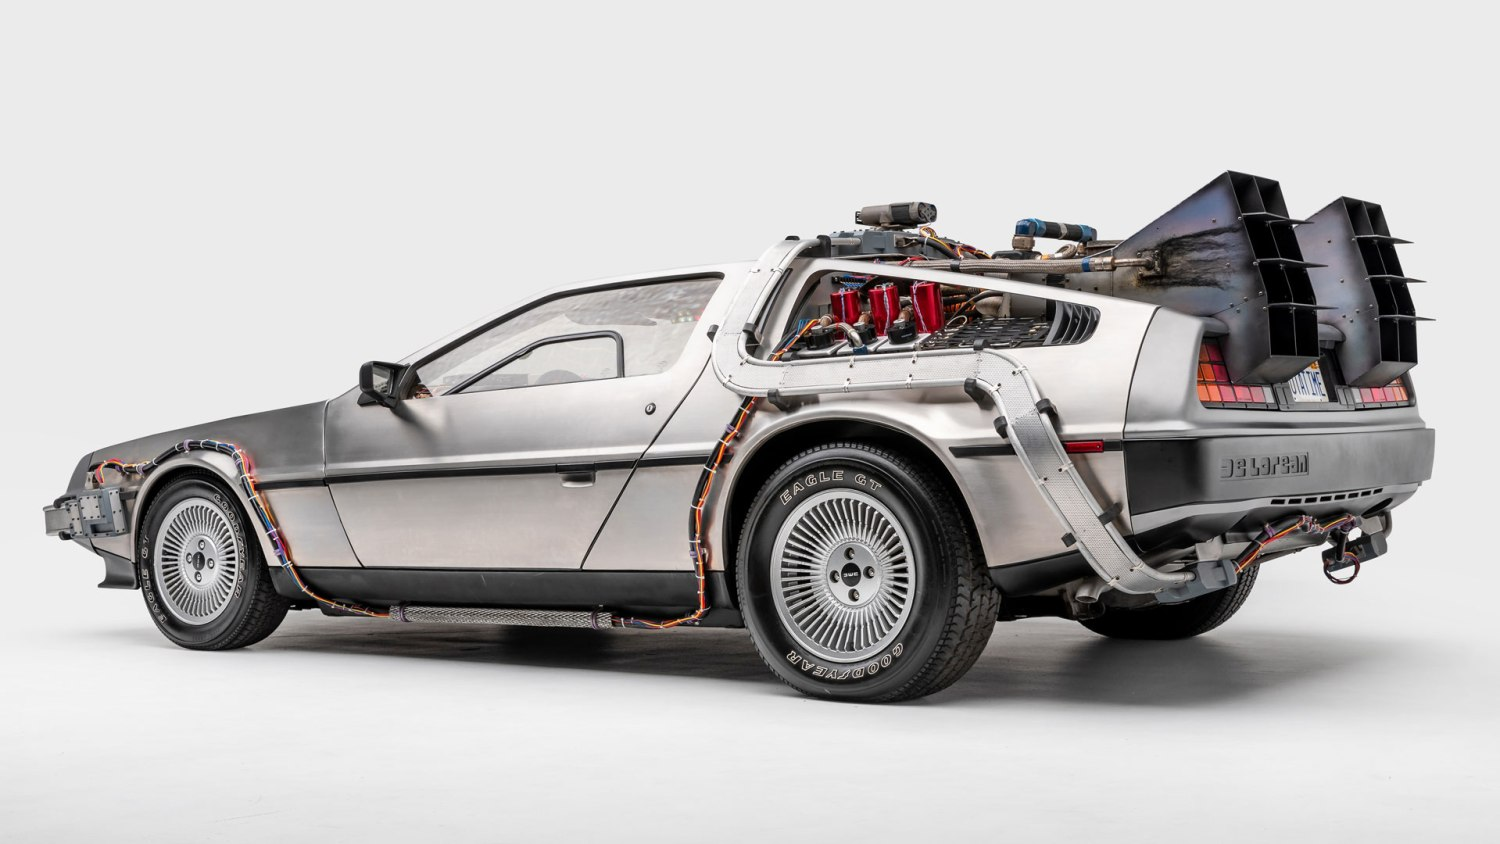 Amazing cars of sci-fi